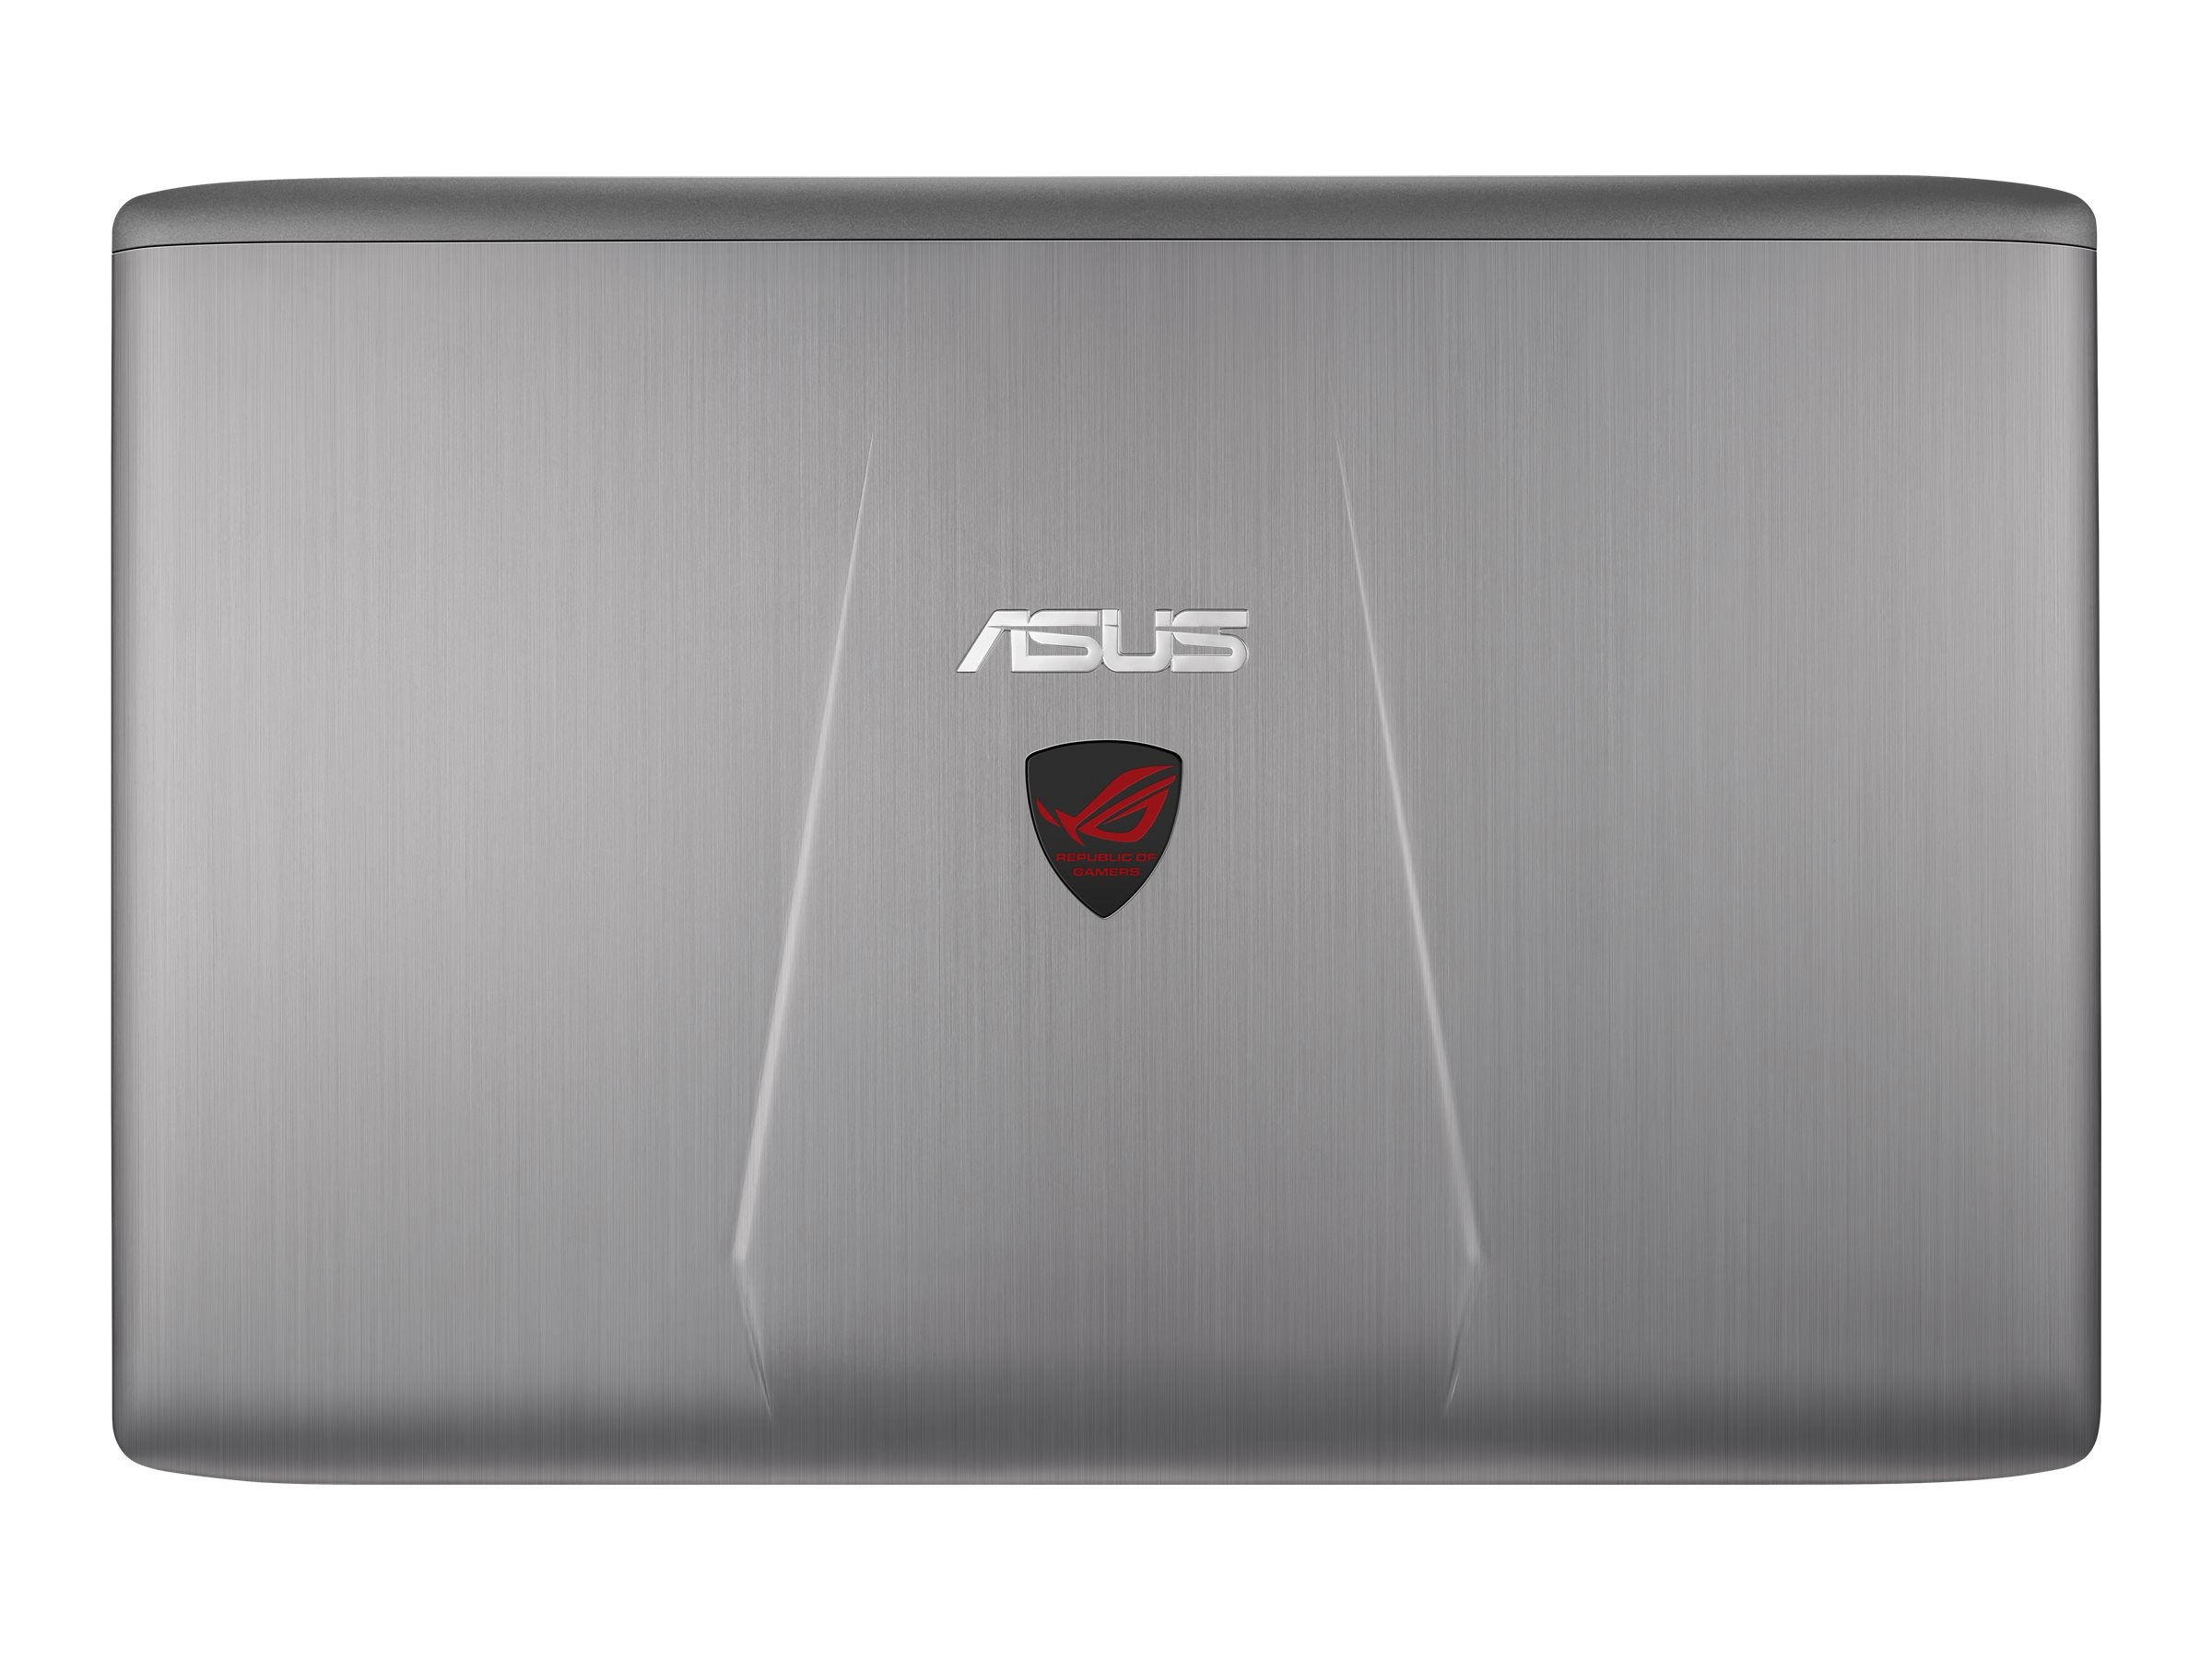 Asus GL752VW-DH74 Image 5